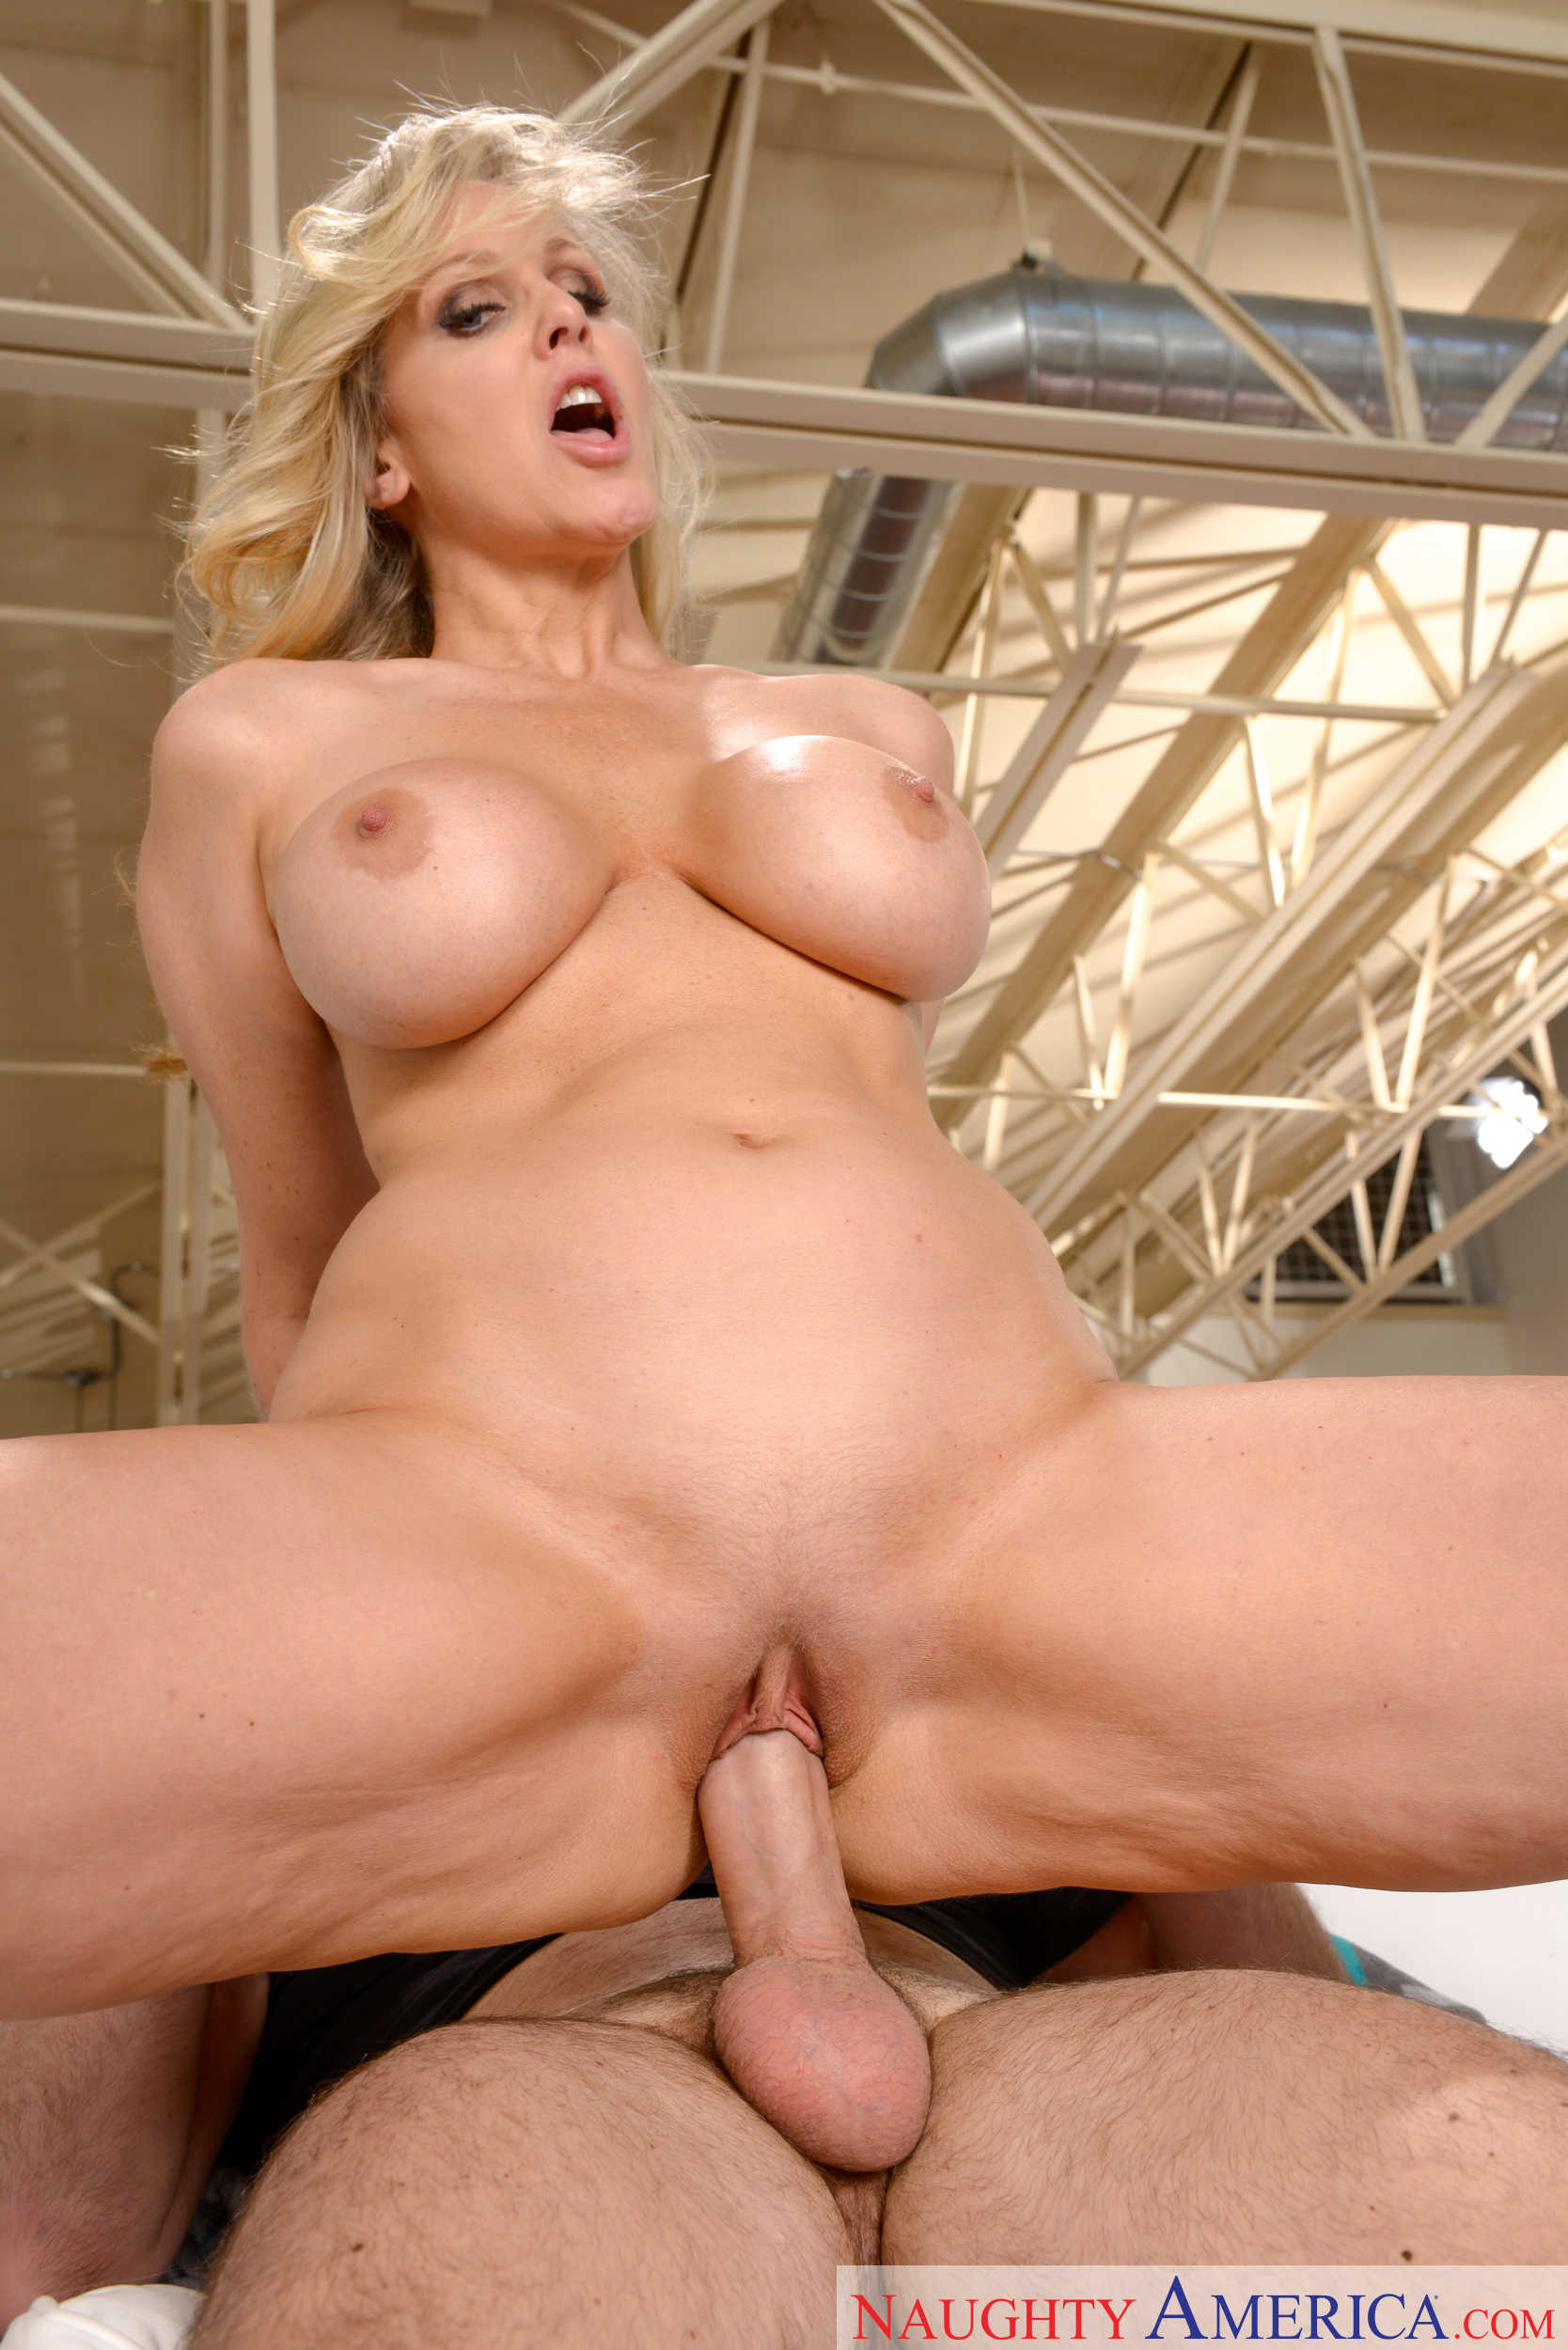 Hot mom sara jay 3g